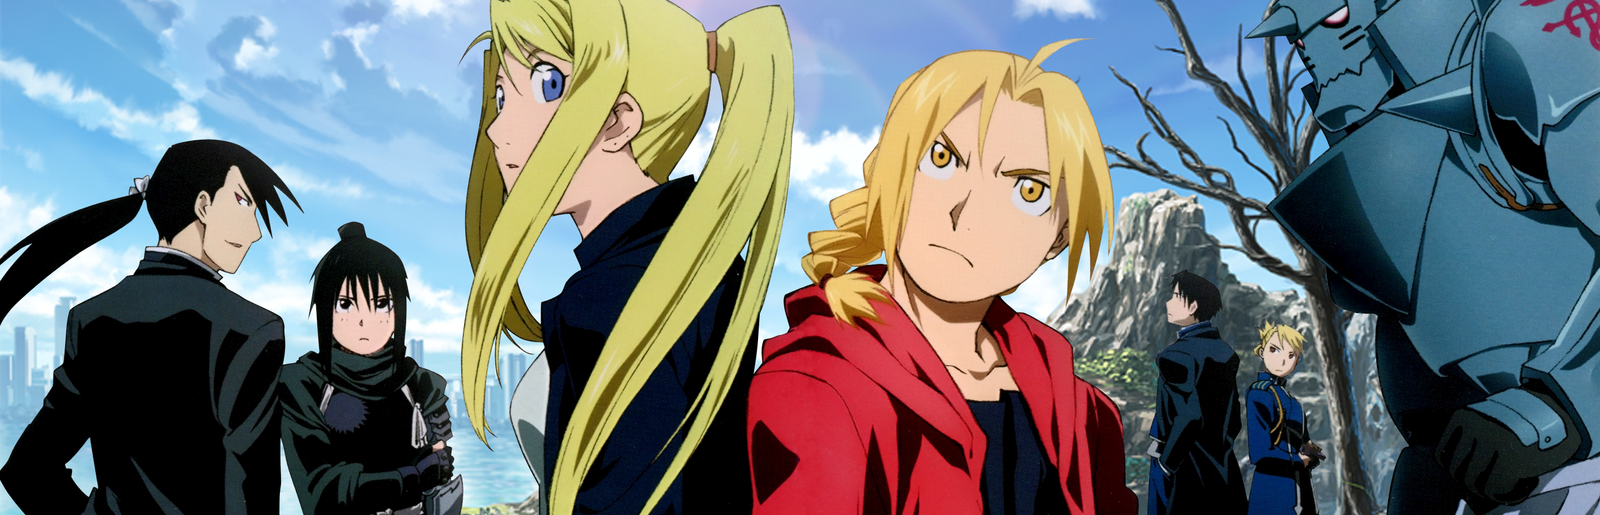 Fullmetal Alchemist: Brotherhood – Rewatch #8